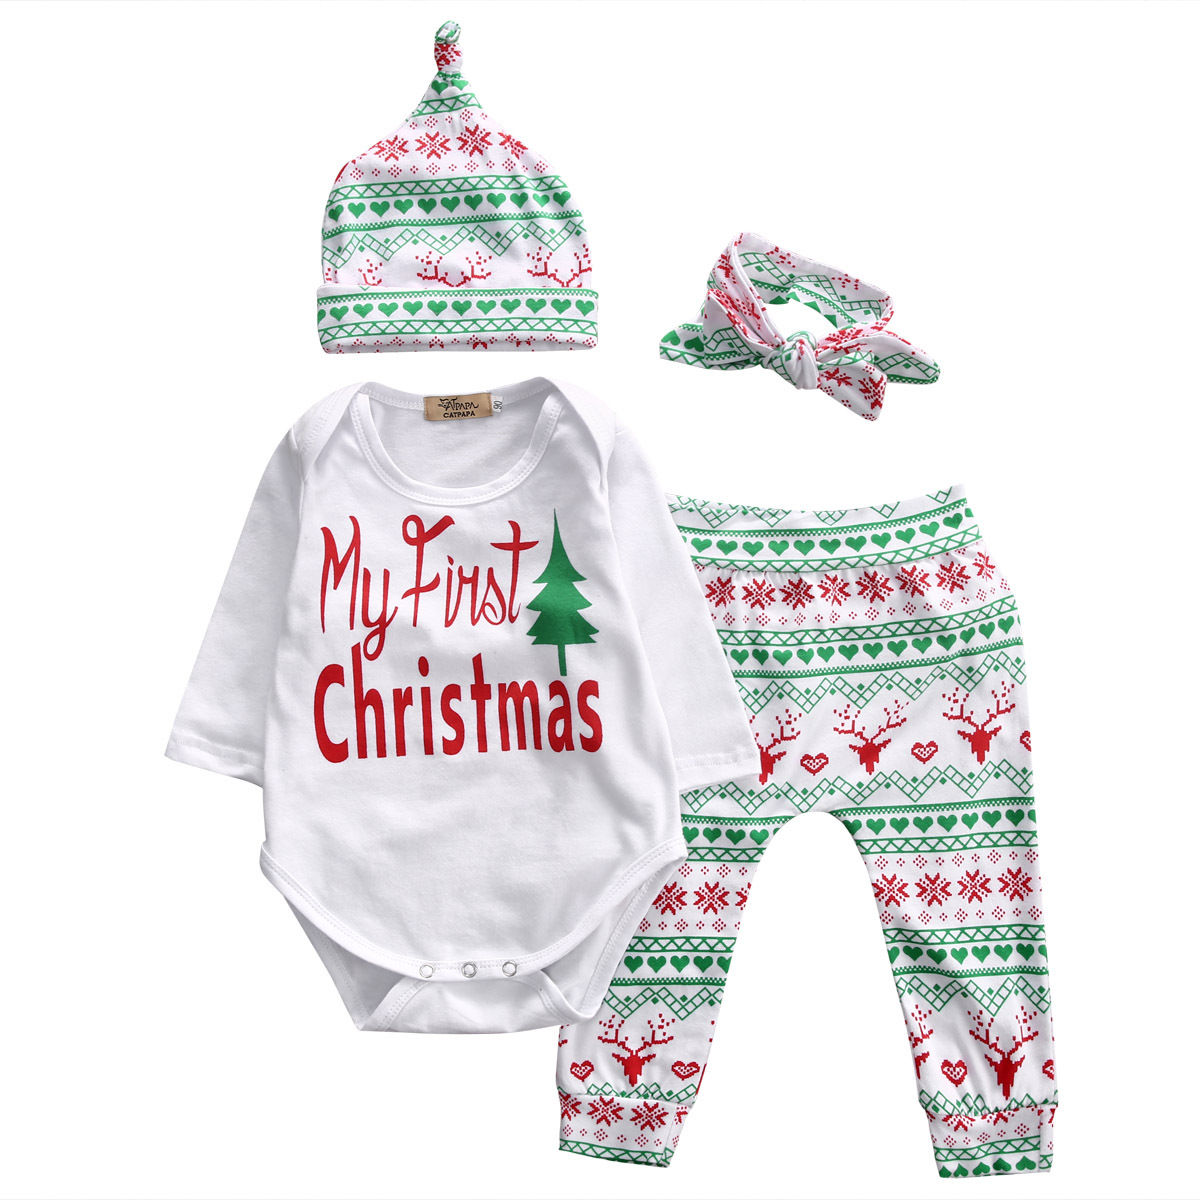 Boys Romper Pants Casual Cute Leggings Girls Clothing 4PCS Set Christmas Infant Baby Boy Girl Clothes Tops Outfits Garments Kids infant baby boy girl 2pcs clothes set kids short sleeve you serious clark letters romper tops car print pants 2pcs outfit set